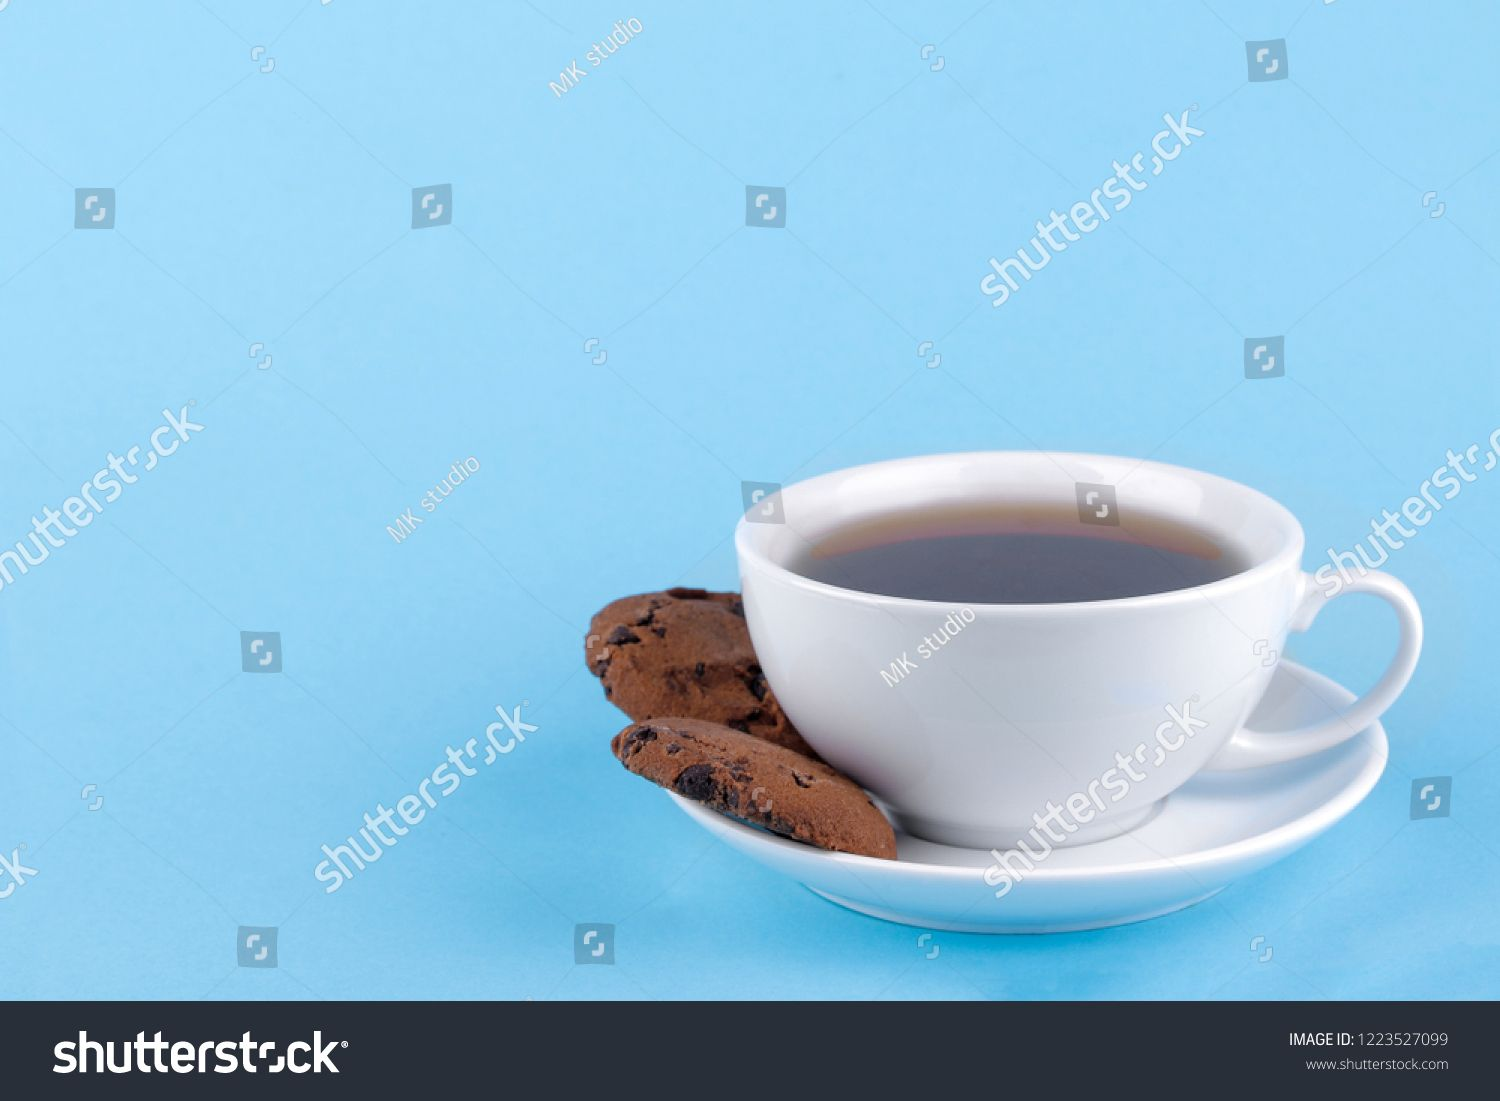 Cookies With Chocolate On A Plate With A Cup Of Coffee On A Bright Blue Background Baking Yummy Ad Affiliate C Coffee Stock Chocolate Cookies Chocolate Hd wallpaper milk splash cookies mug